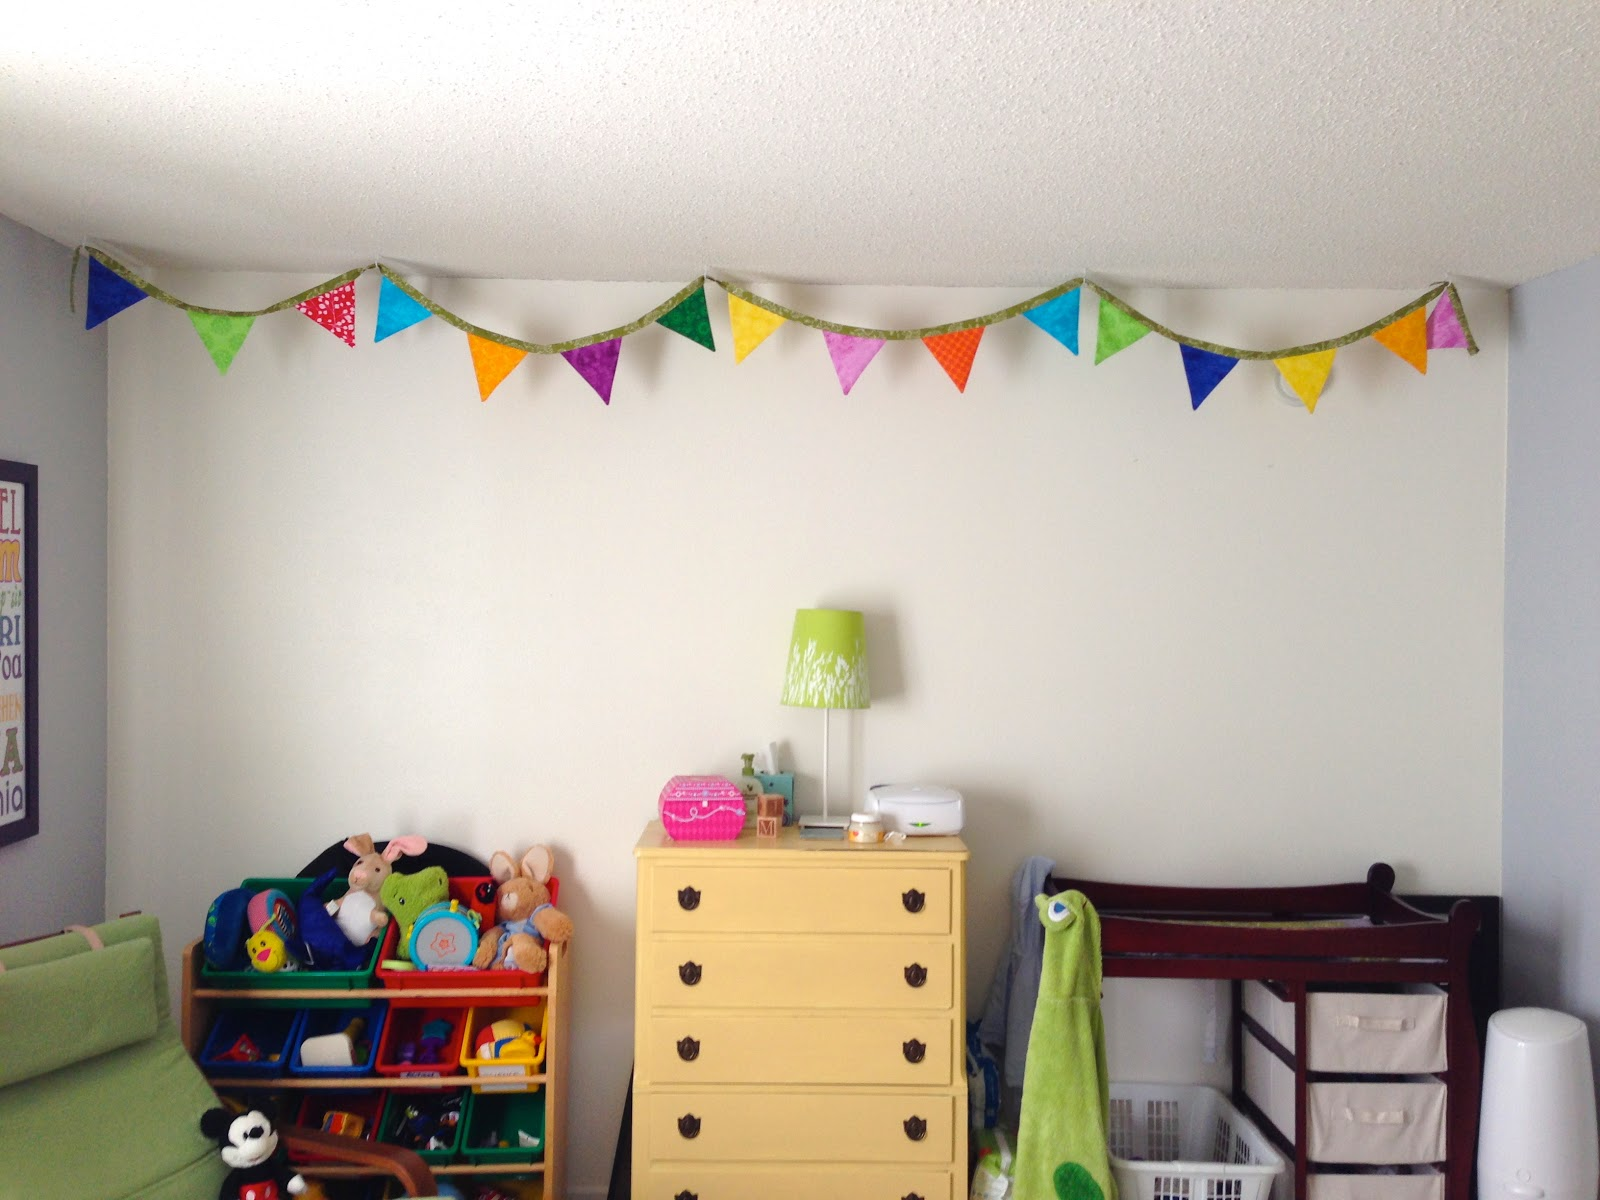 Kids Bedroom Bunting merryweather's cottage: it's a small world kids room: bunting